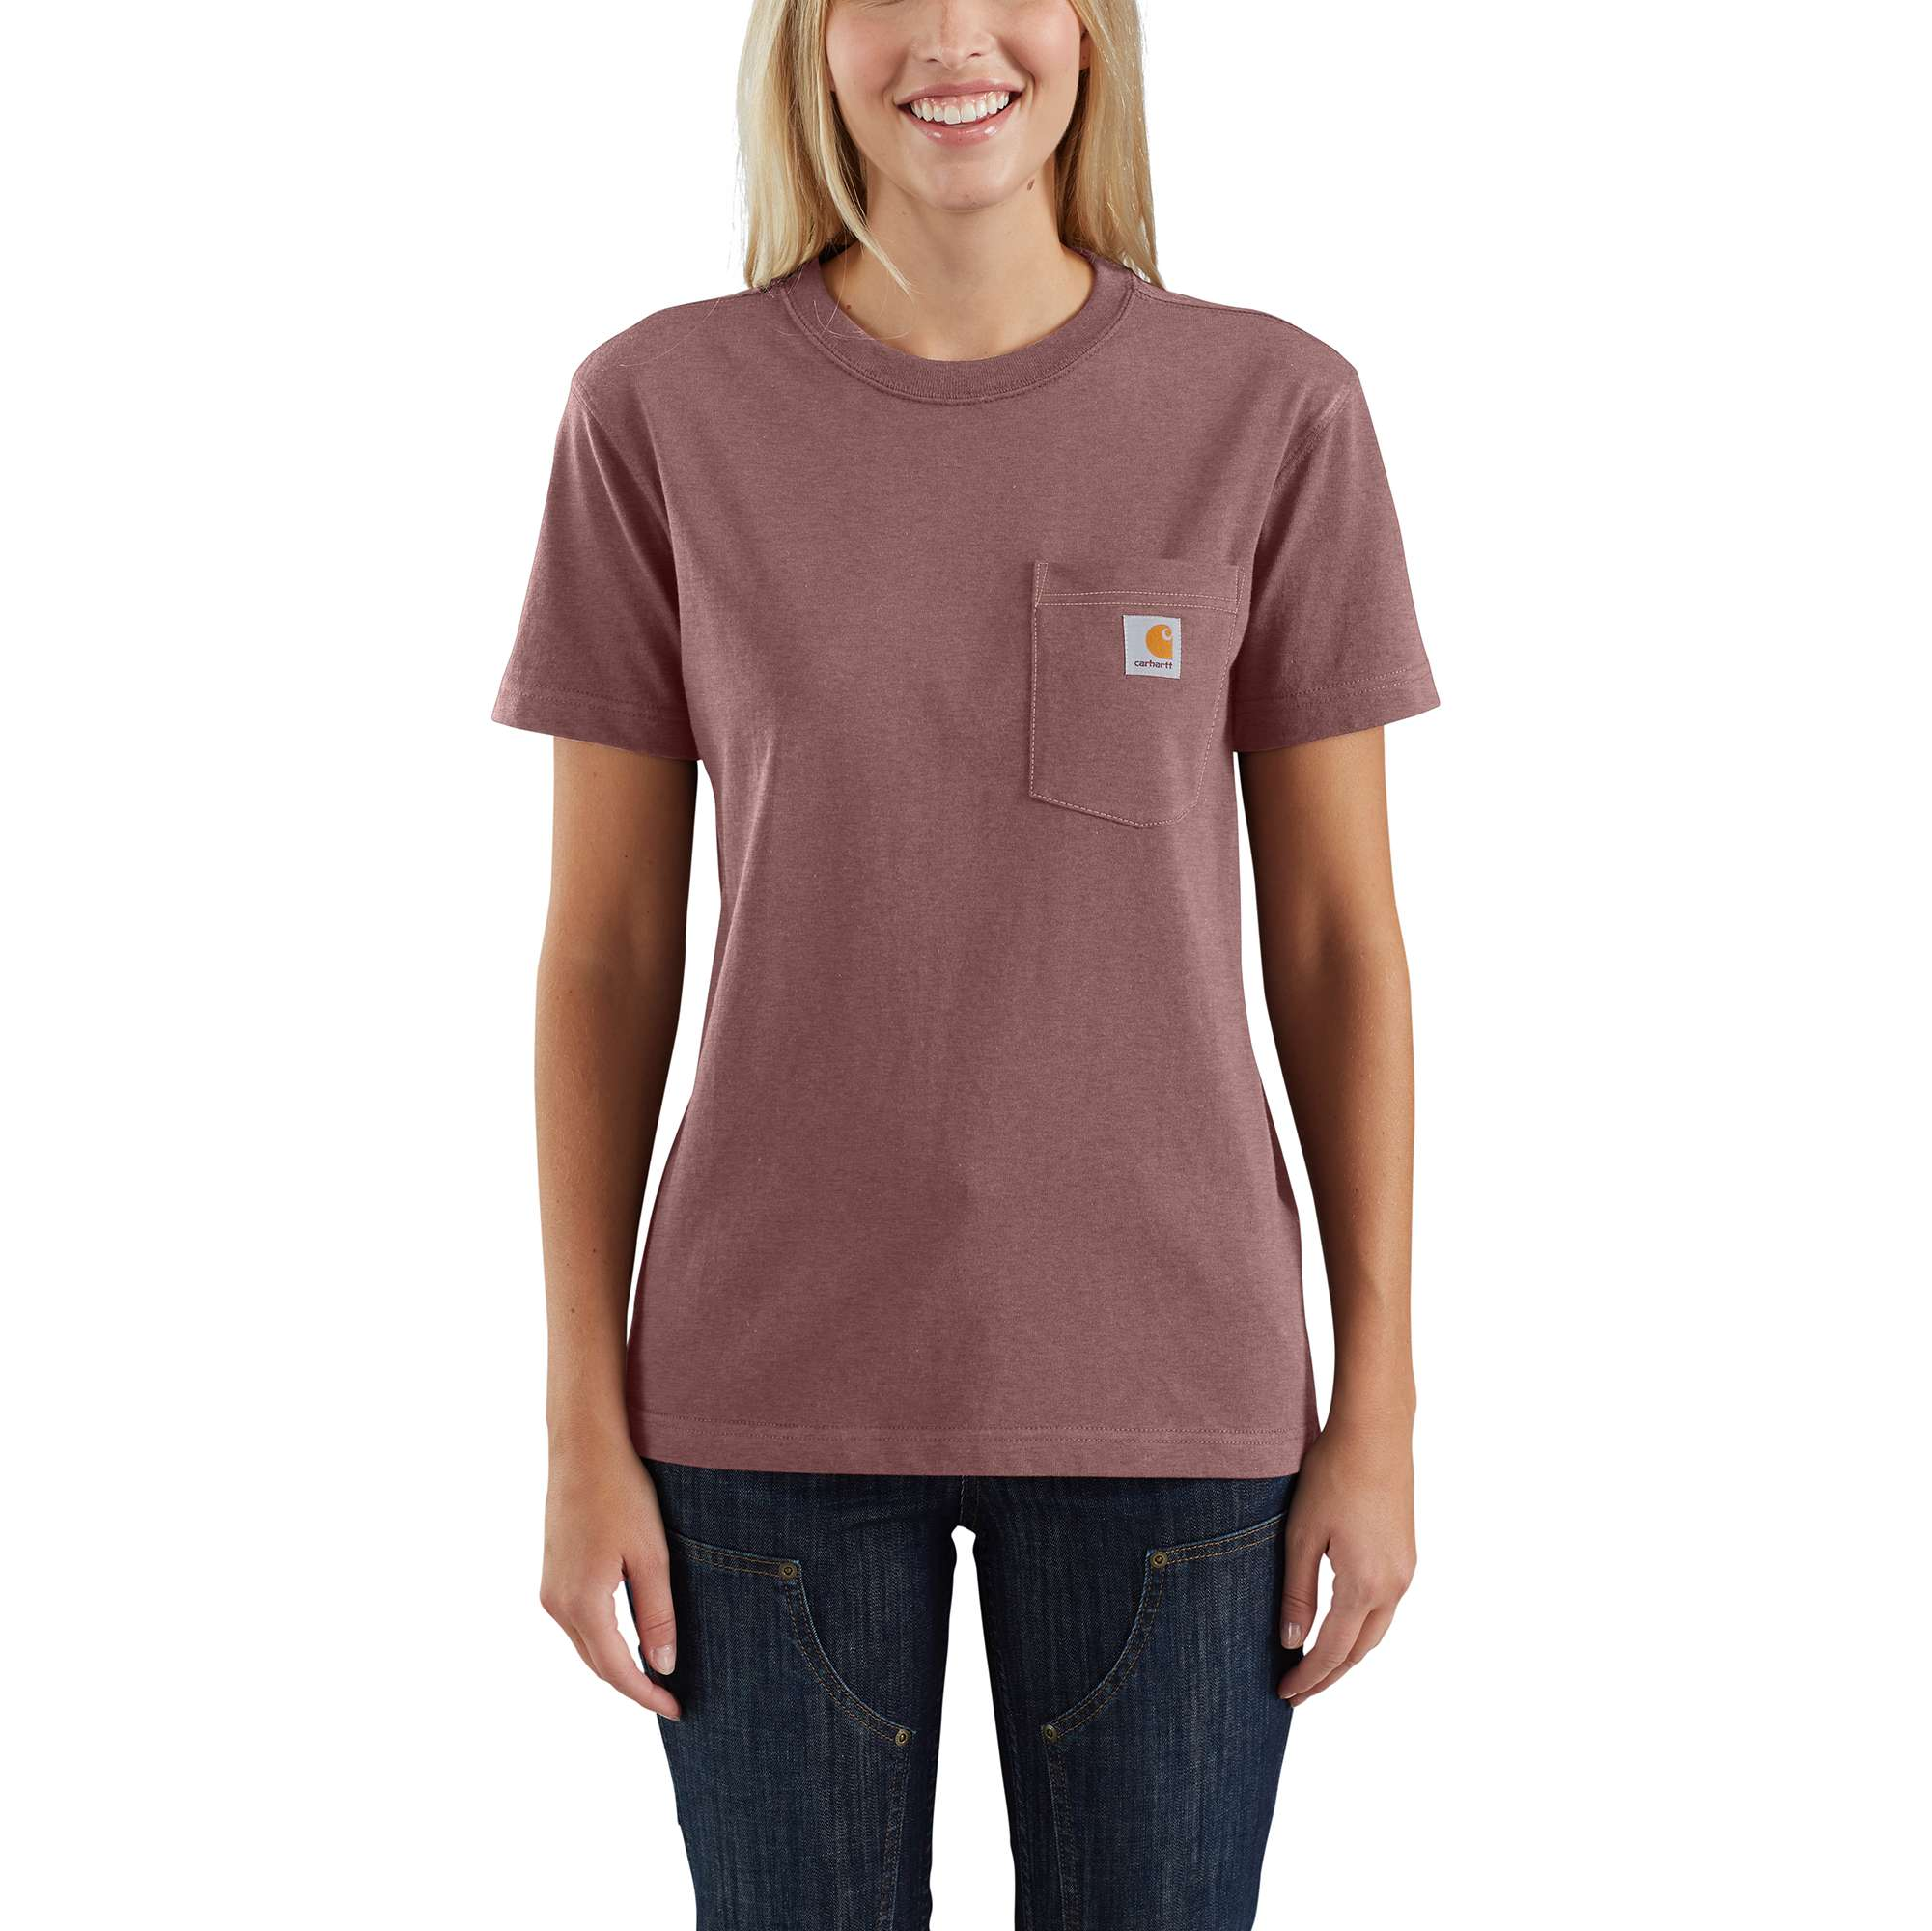 Loose Fit Heavyweight Short-Sleeve Pocket Tried and True Graphic T-Shirt